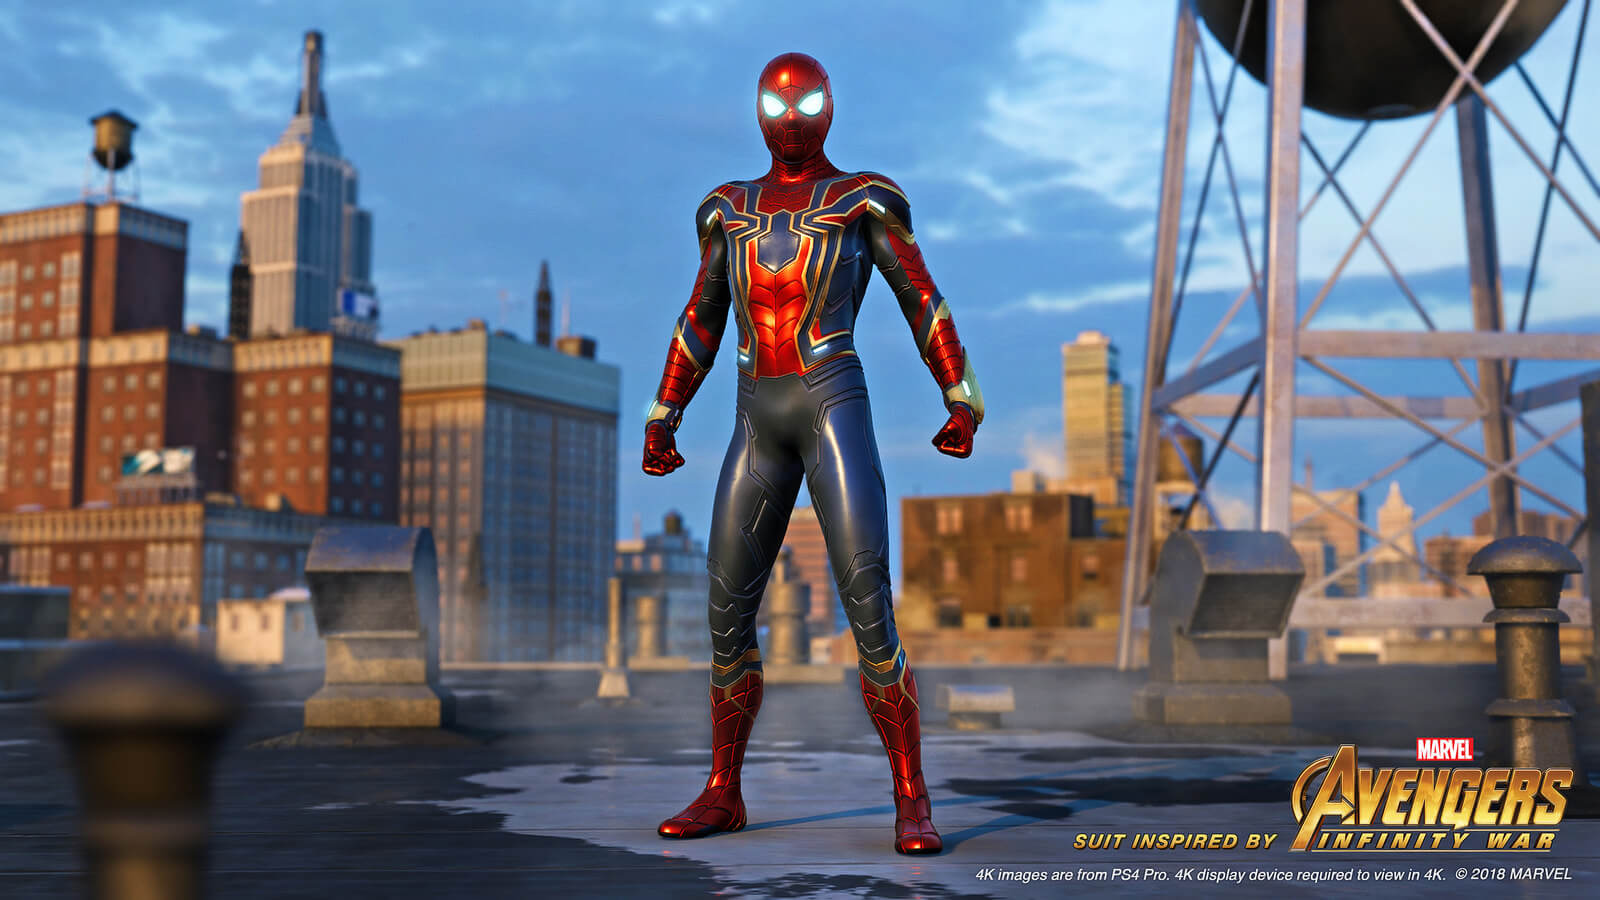 Uniforme do Aranha de Ferro em Spider-Man